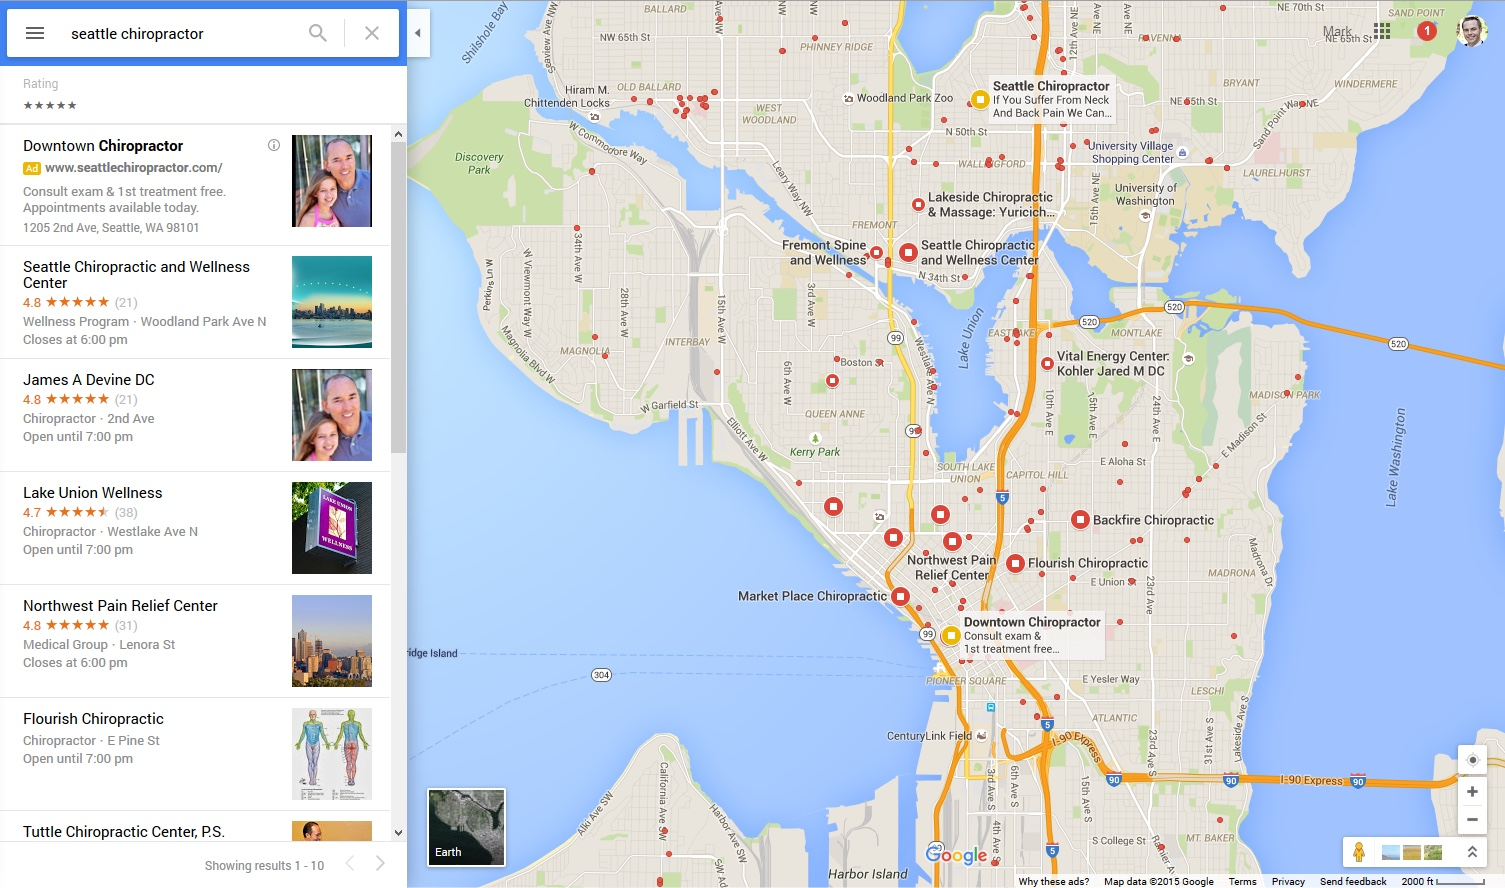 15 Years of Google Maps Website Design History - 48 Images ... on google voice, google docs, google art project, satellite map images with missing or unclear data, google sky, google chrome, yahoo! maps, google street view, bing maps, disney maps 2008, google translate, google search, google goggles, google map maker, google latitude, google mars, google moon, web mapping, google earth, google earth 2007, bing maps 2008,